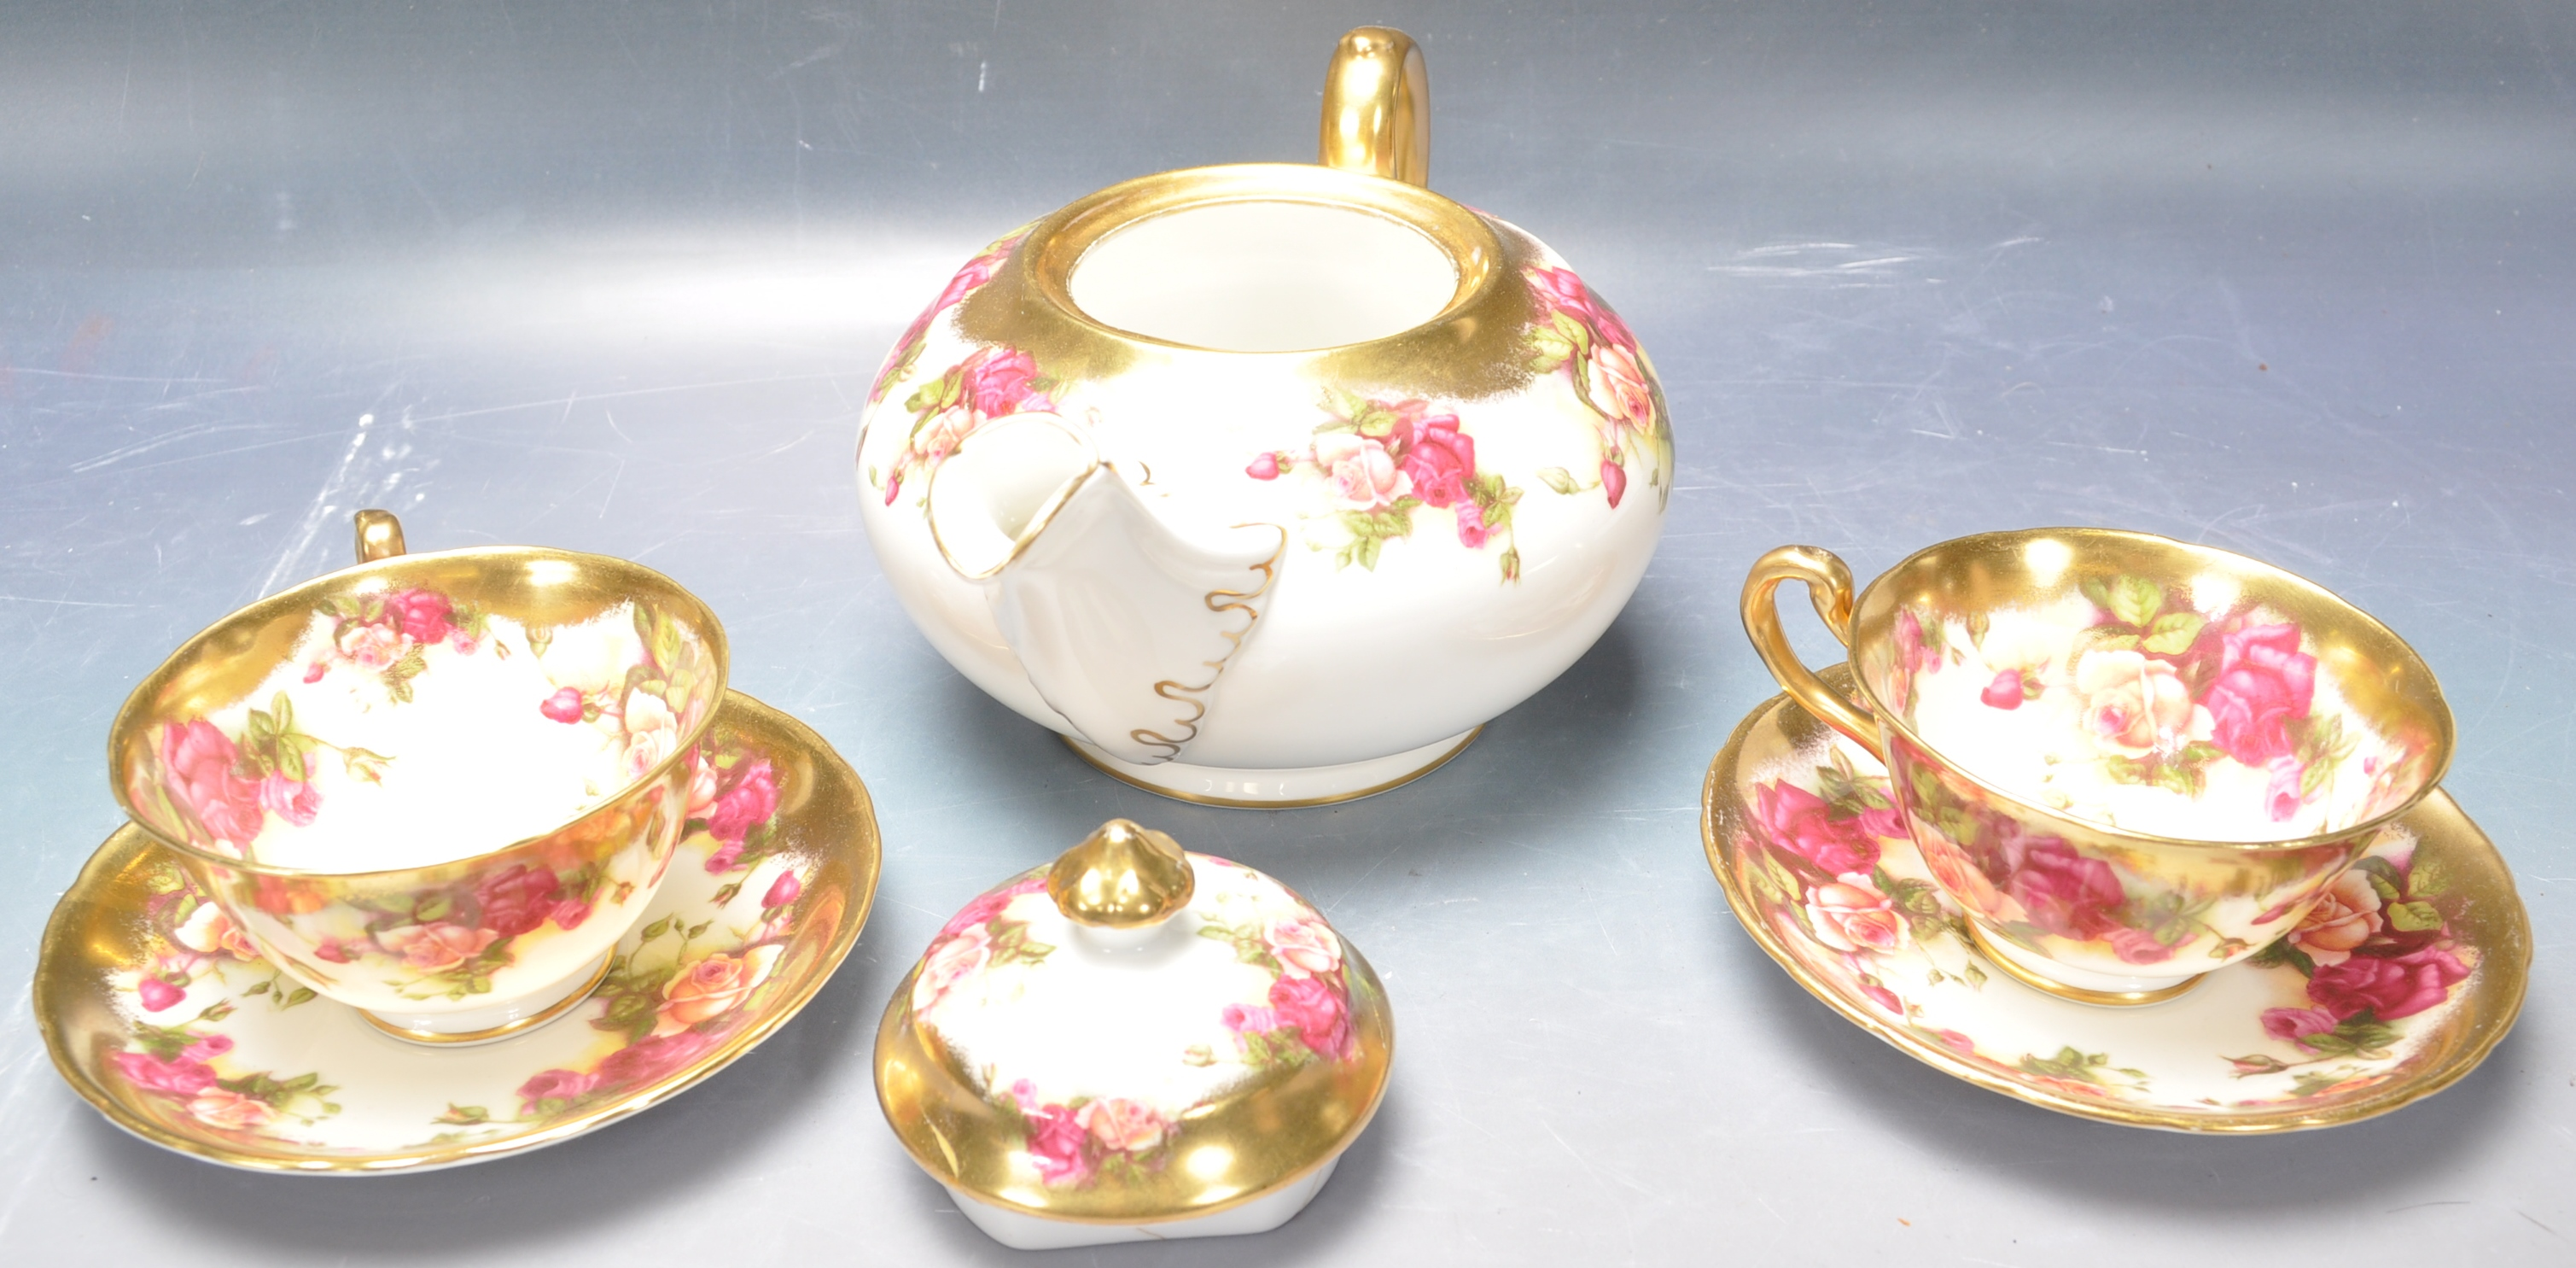 COLLECTION OF 20TH CENTURY ROYAL CHELSEA ENGLISH ROSE CHINA - Image 3 of 7